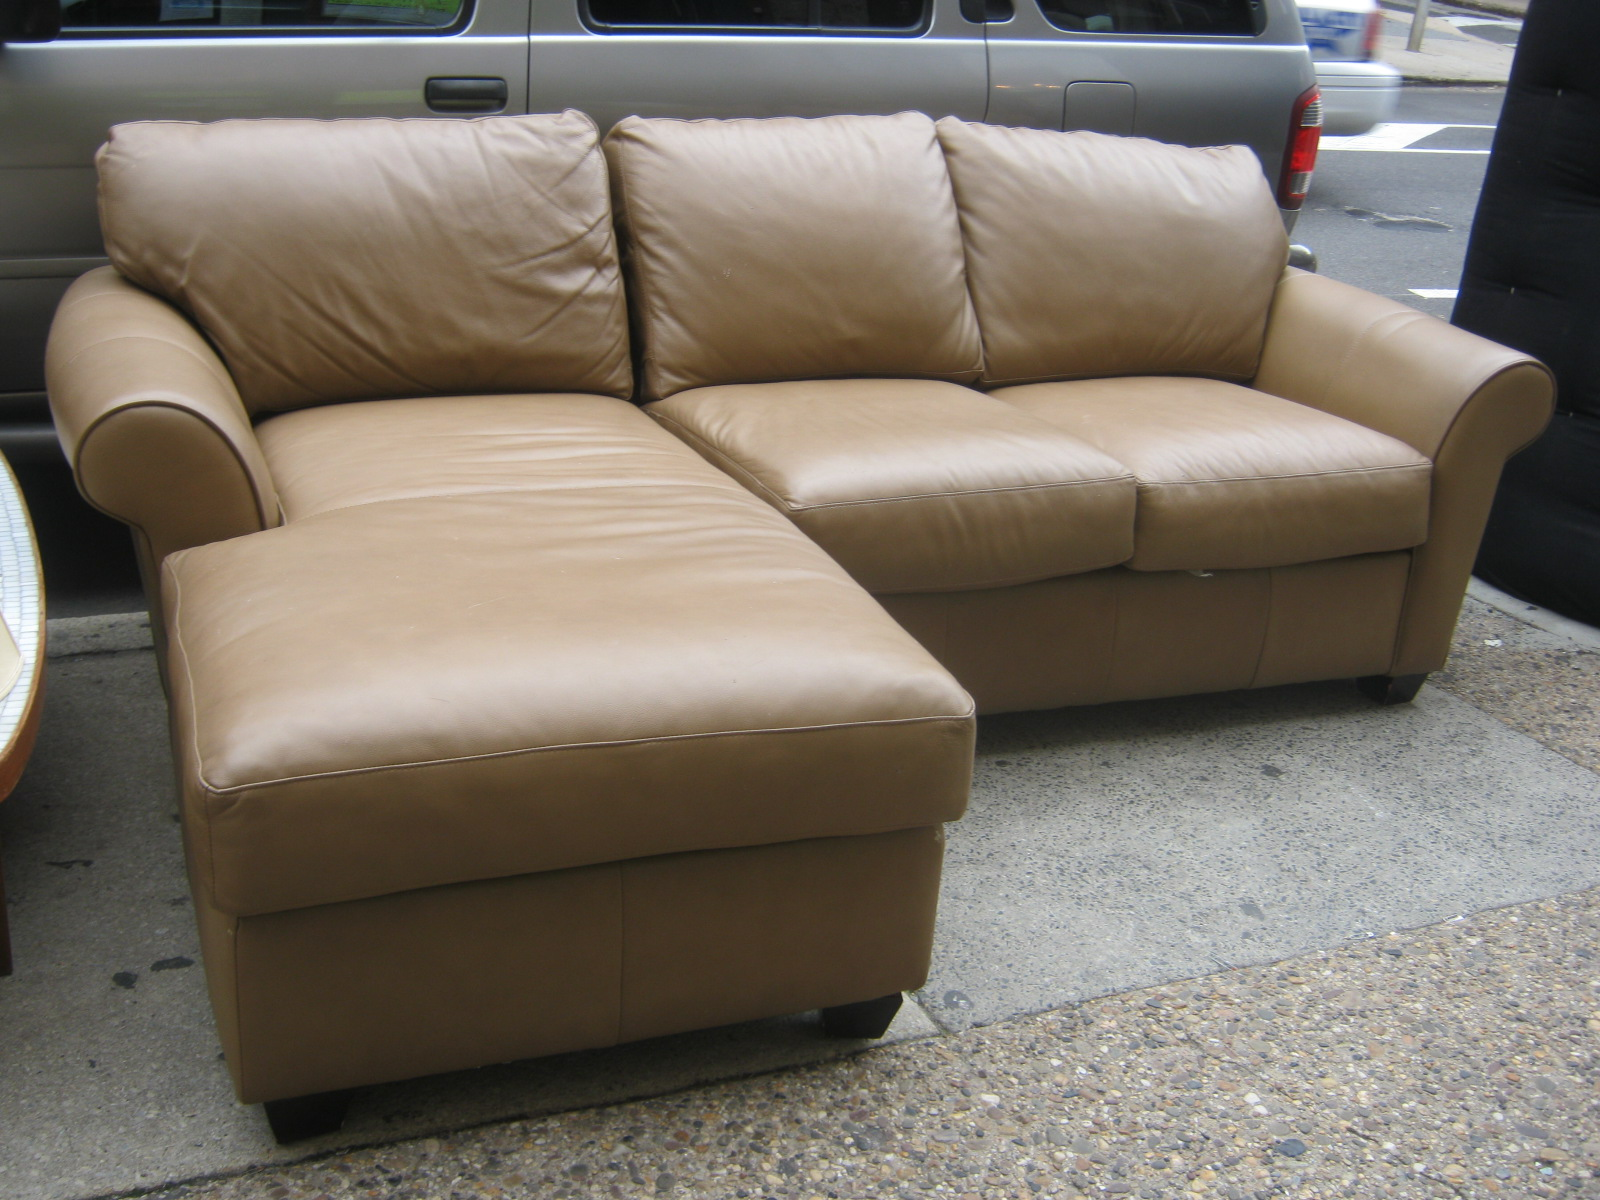 Uhuru furniture collectibles brown leather sectional w for Brown leather sectional with chaise